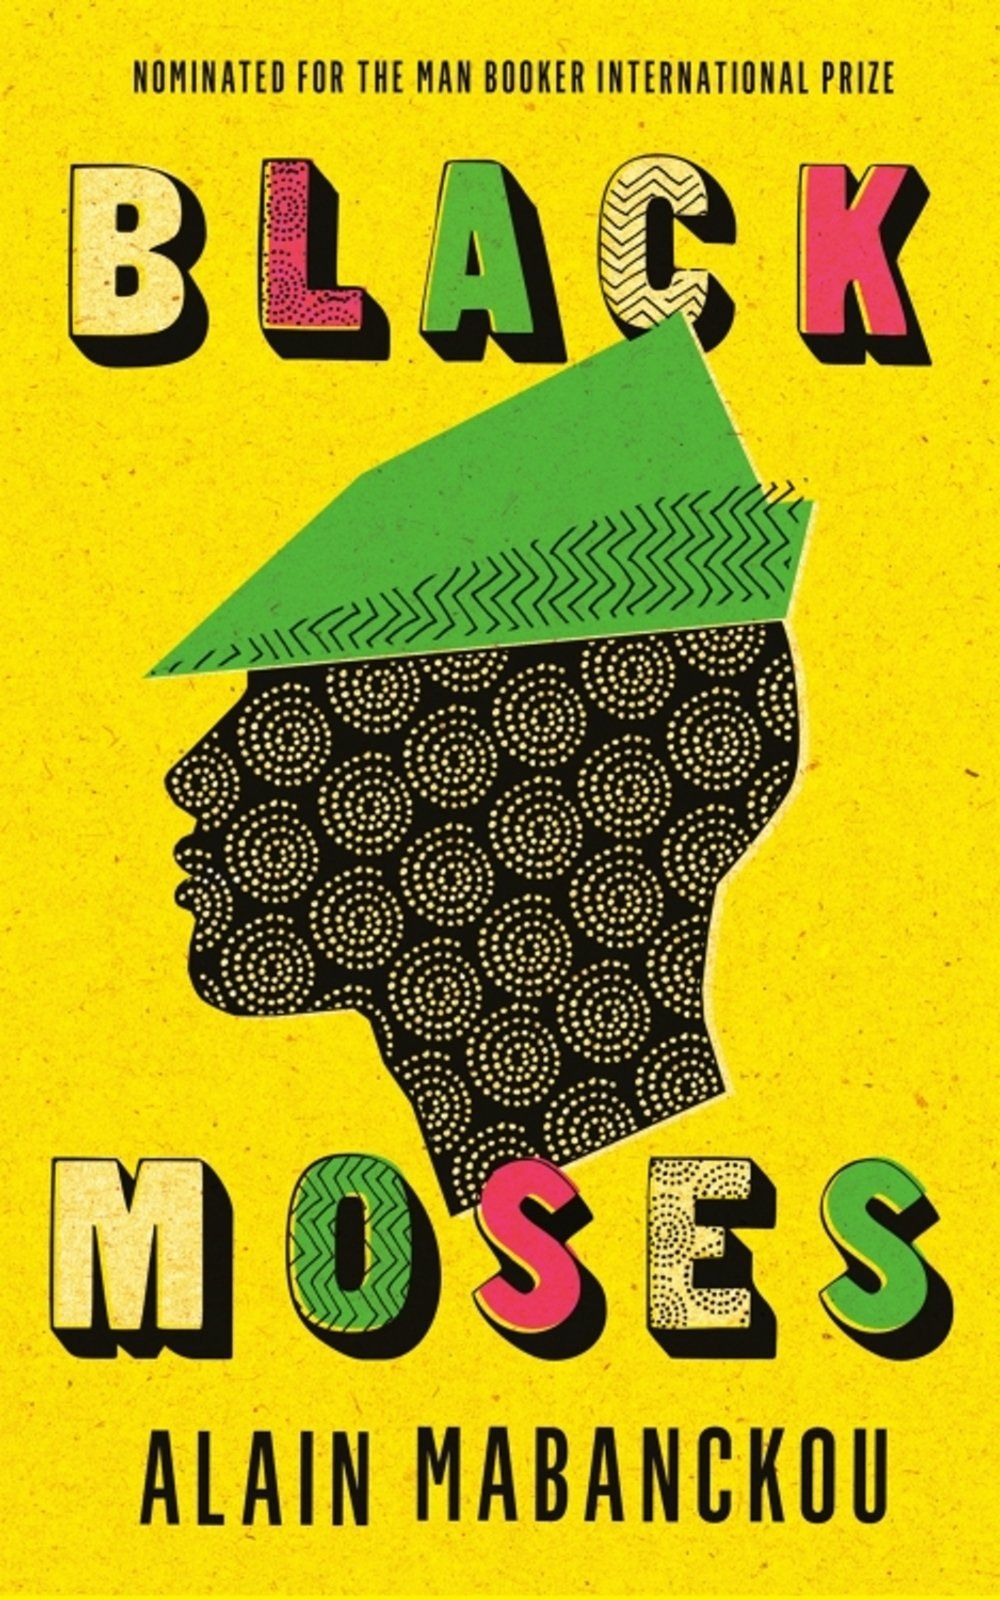 Black Moses Alain Mabanckou Book Cover Design By Gray318